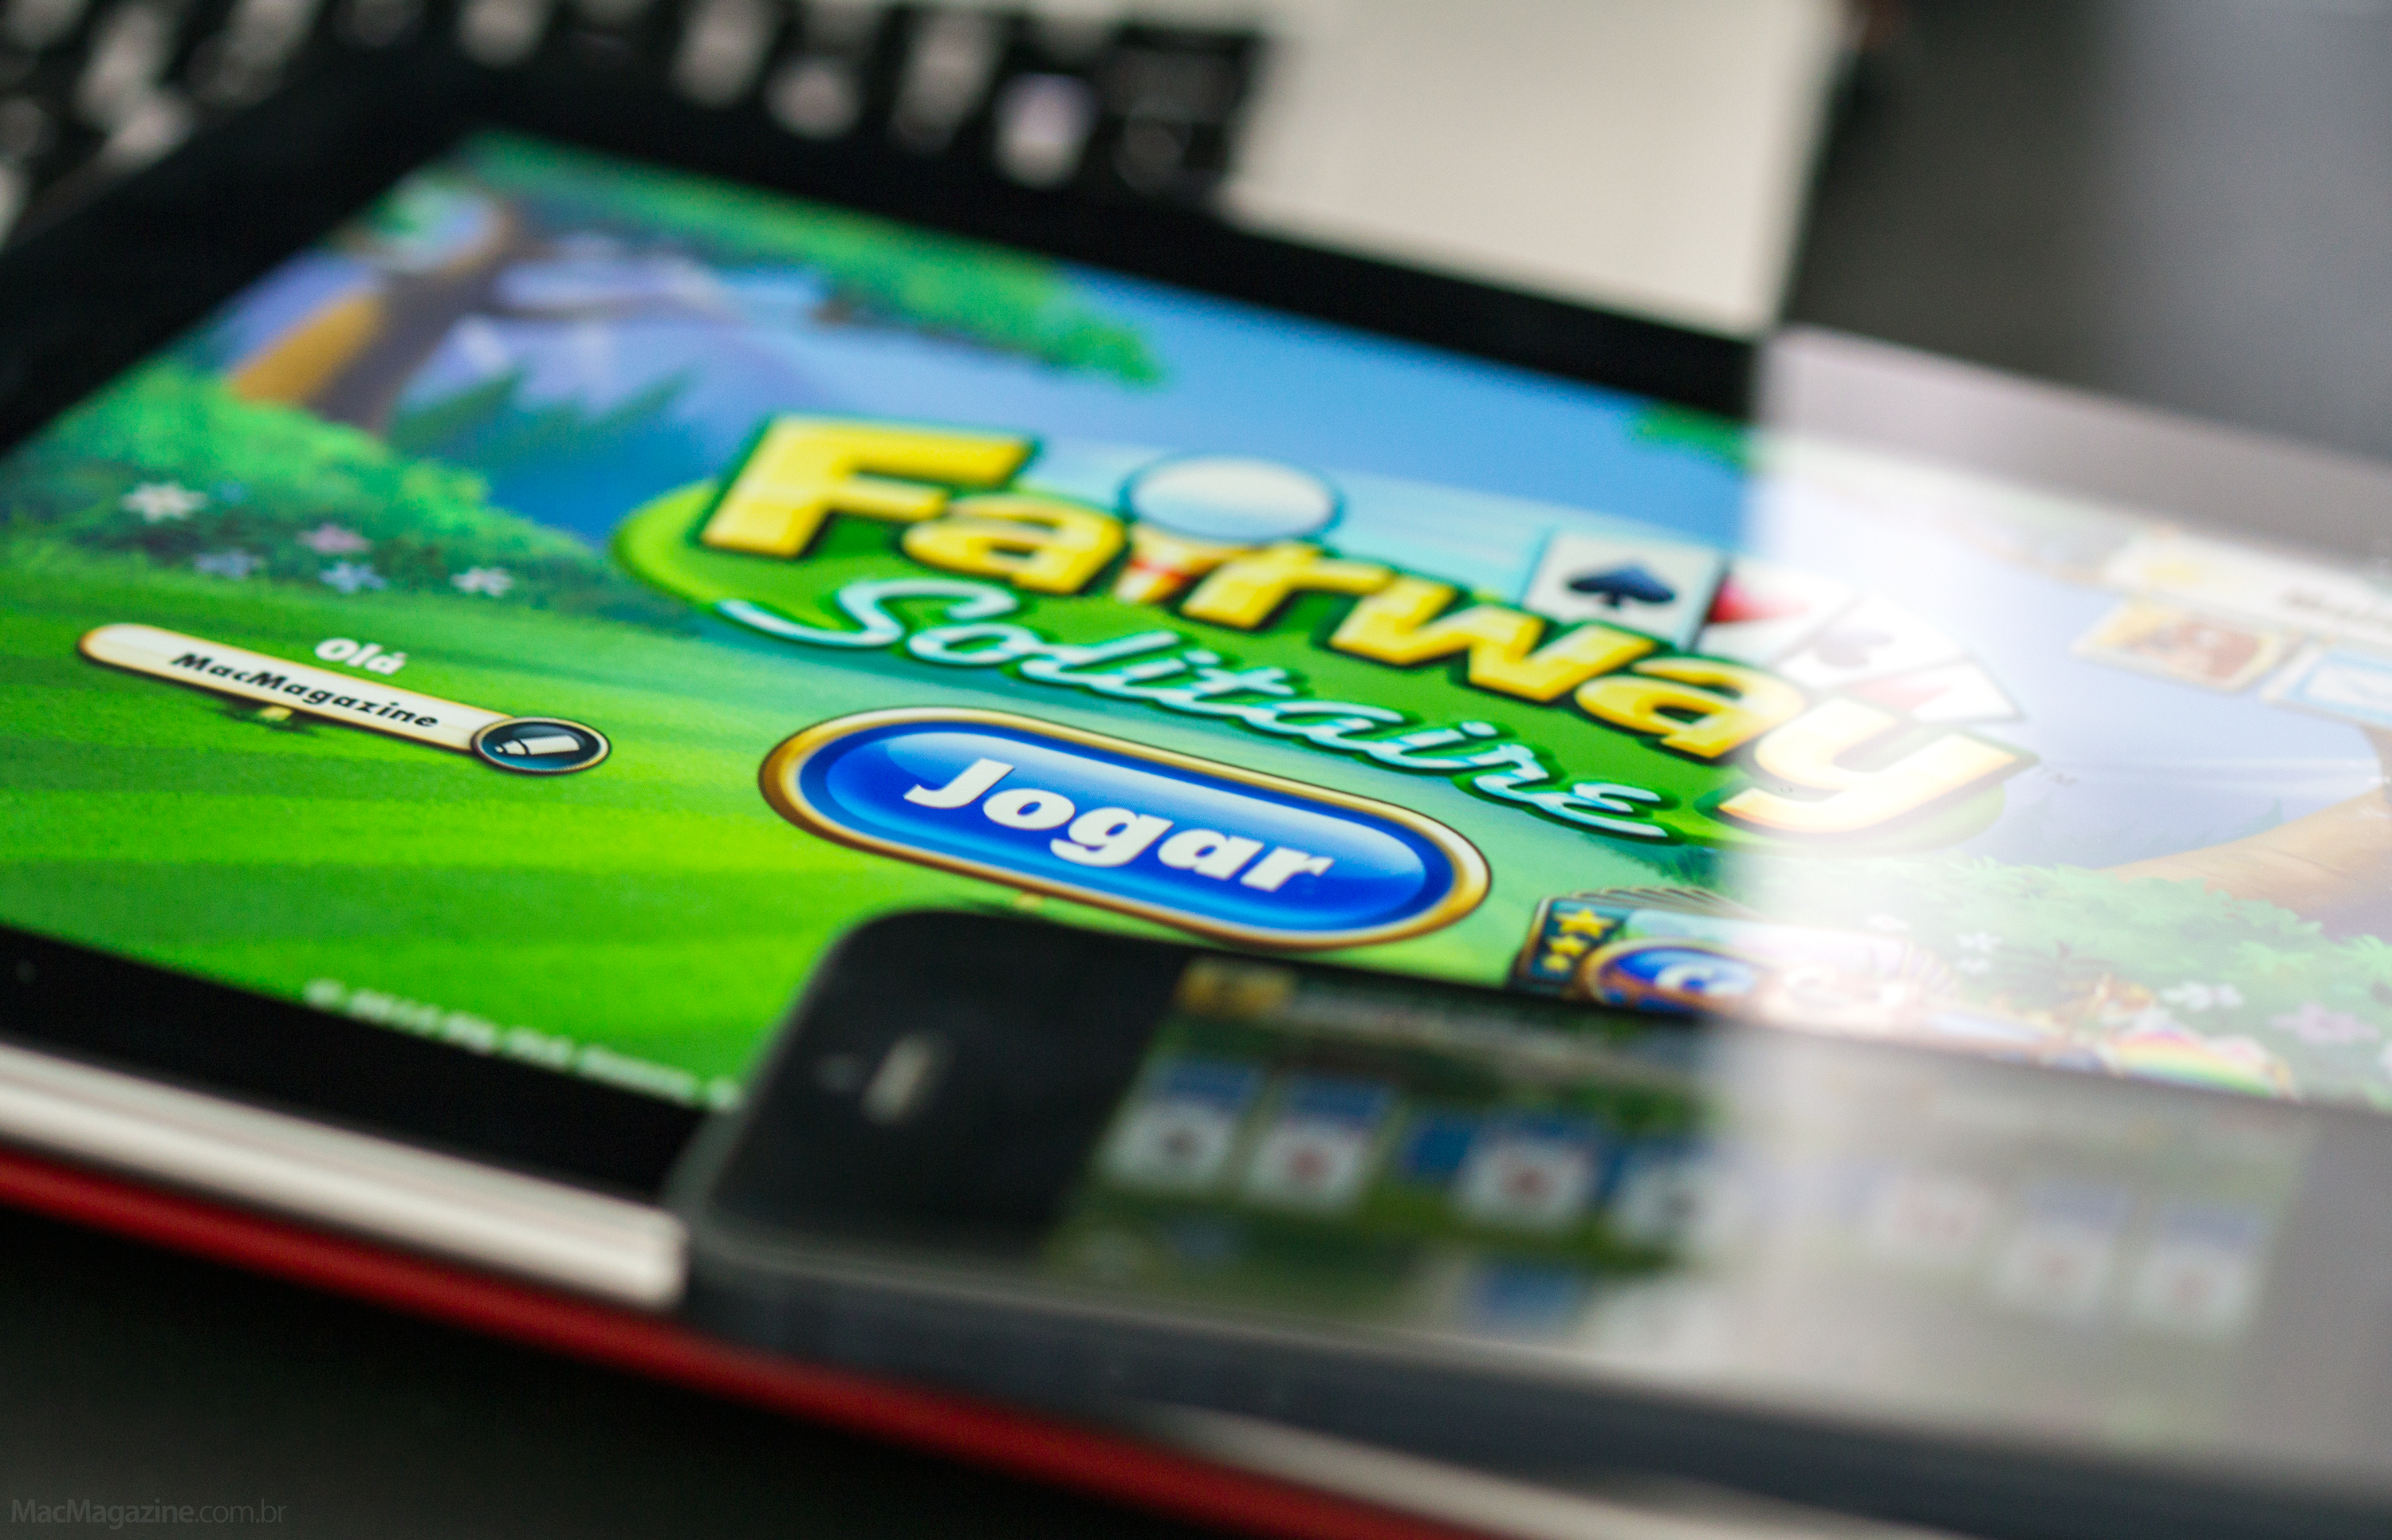 Jogo Fairway Solitaire no iPad e iPhone (by MacMagazine)